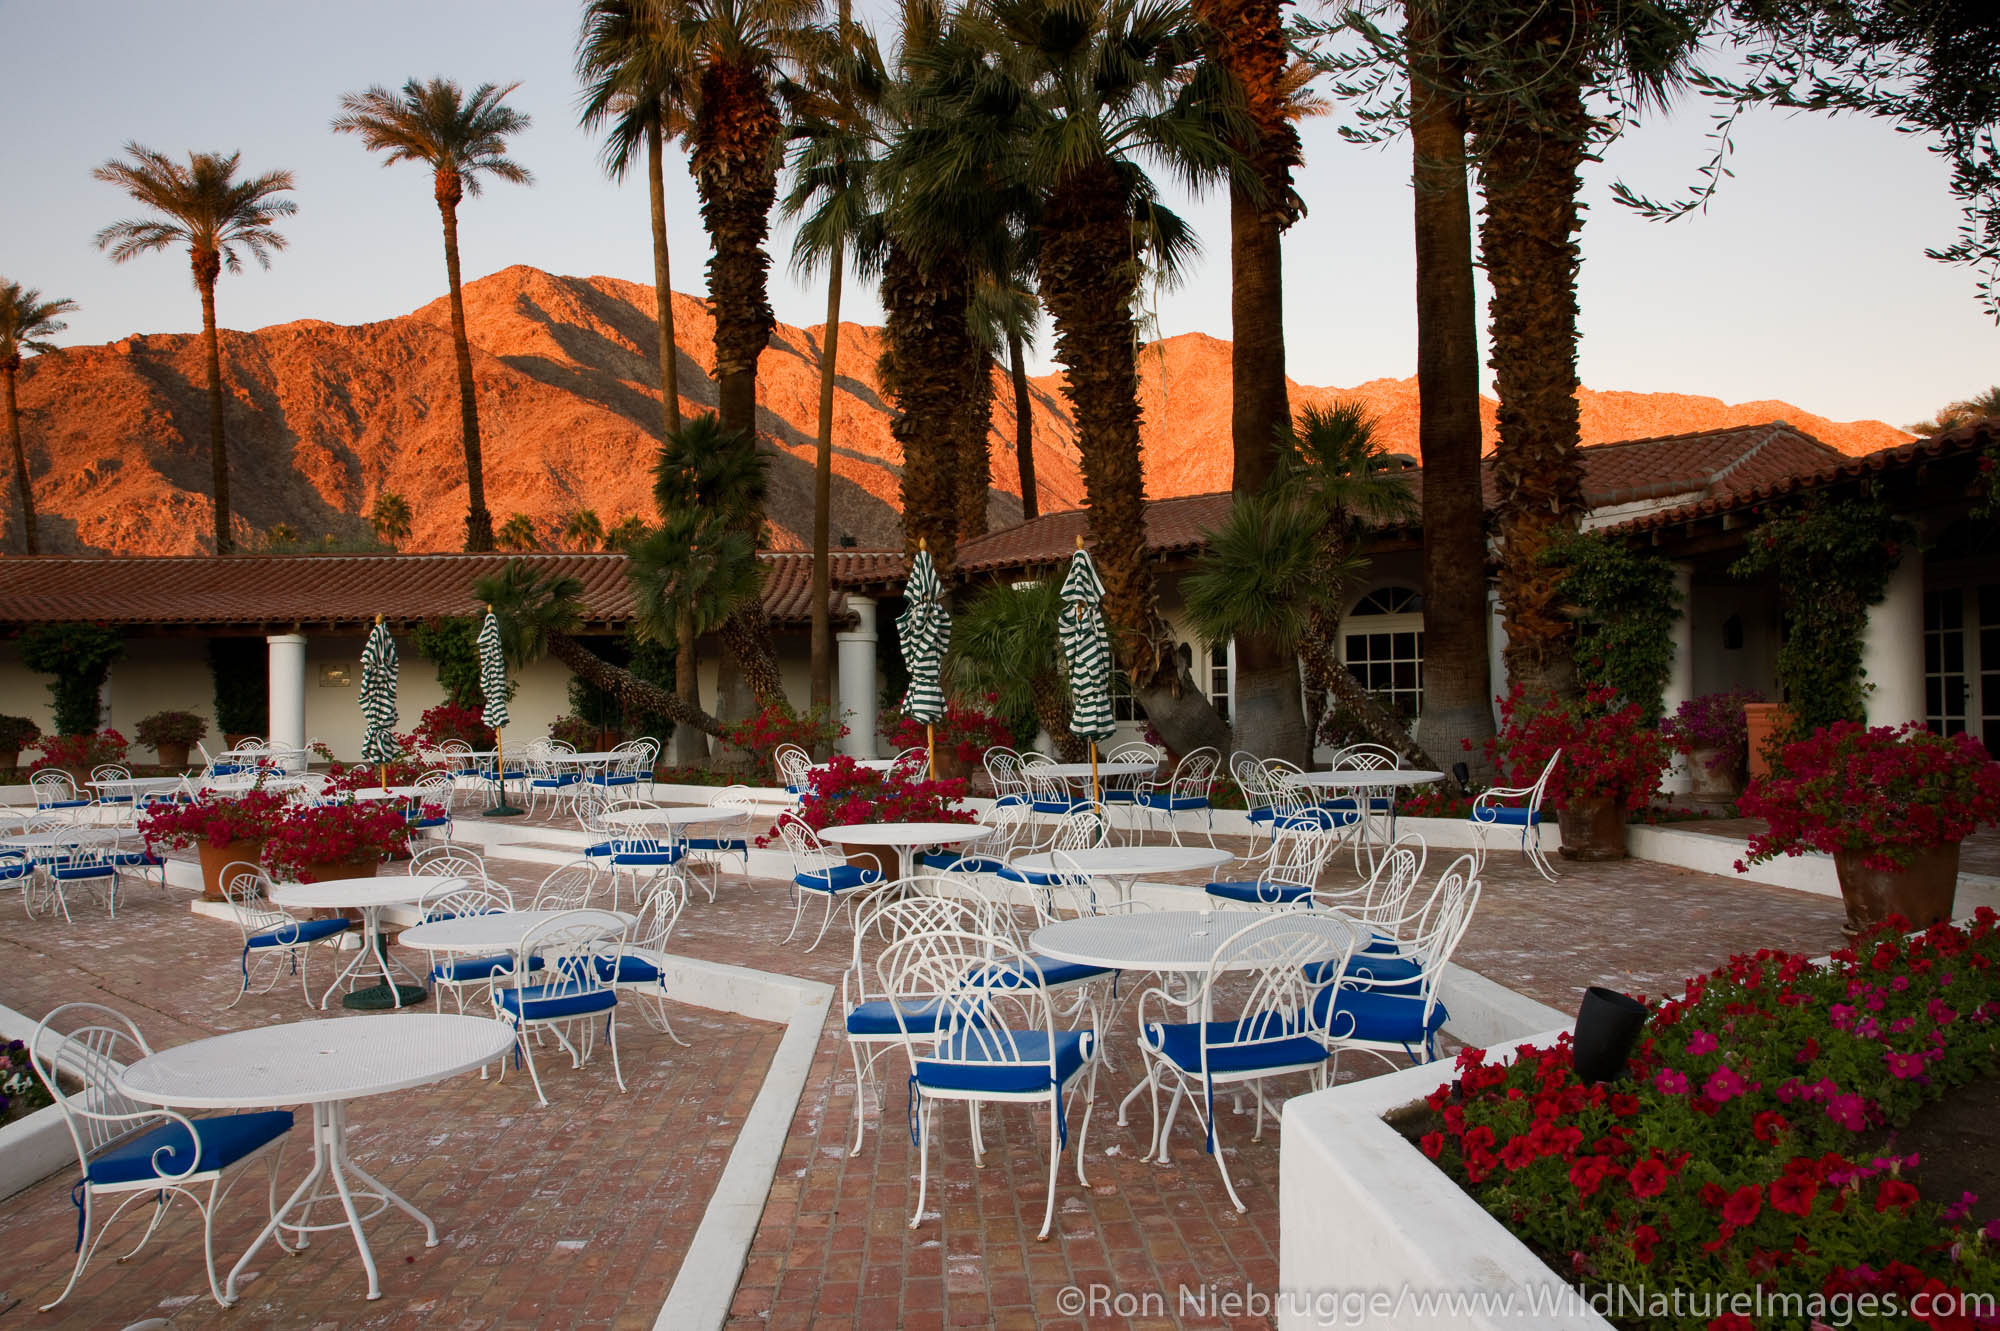 La Quinta Resort & Club in the greater Palm Springs area, La Quinta, California.